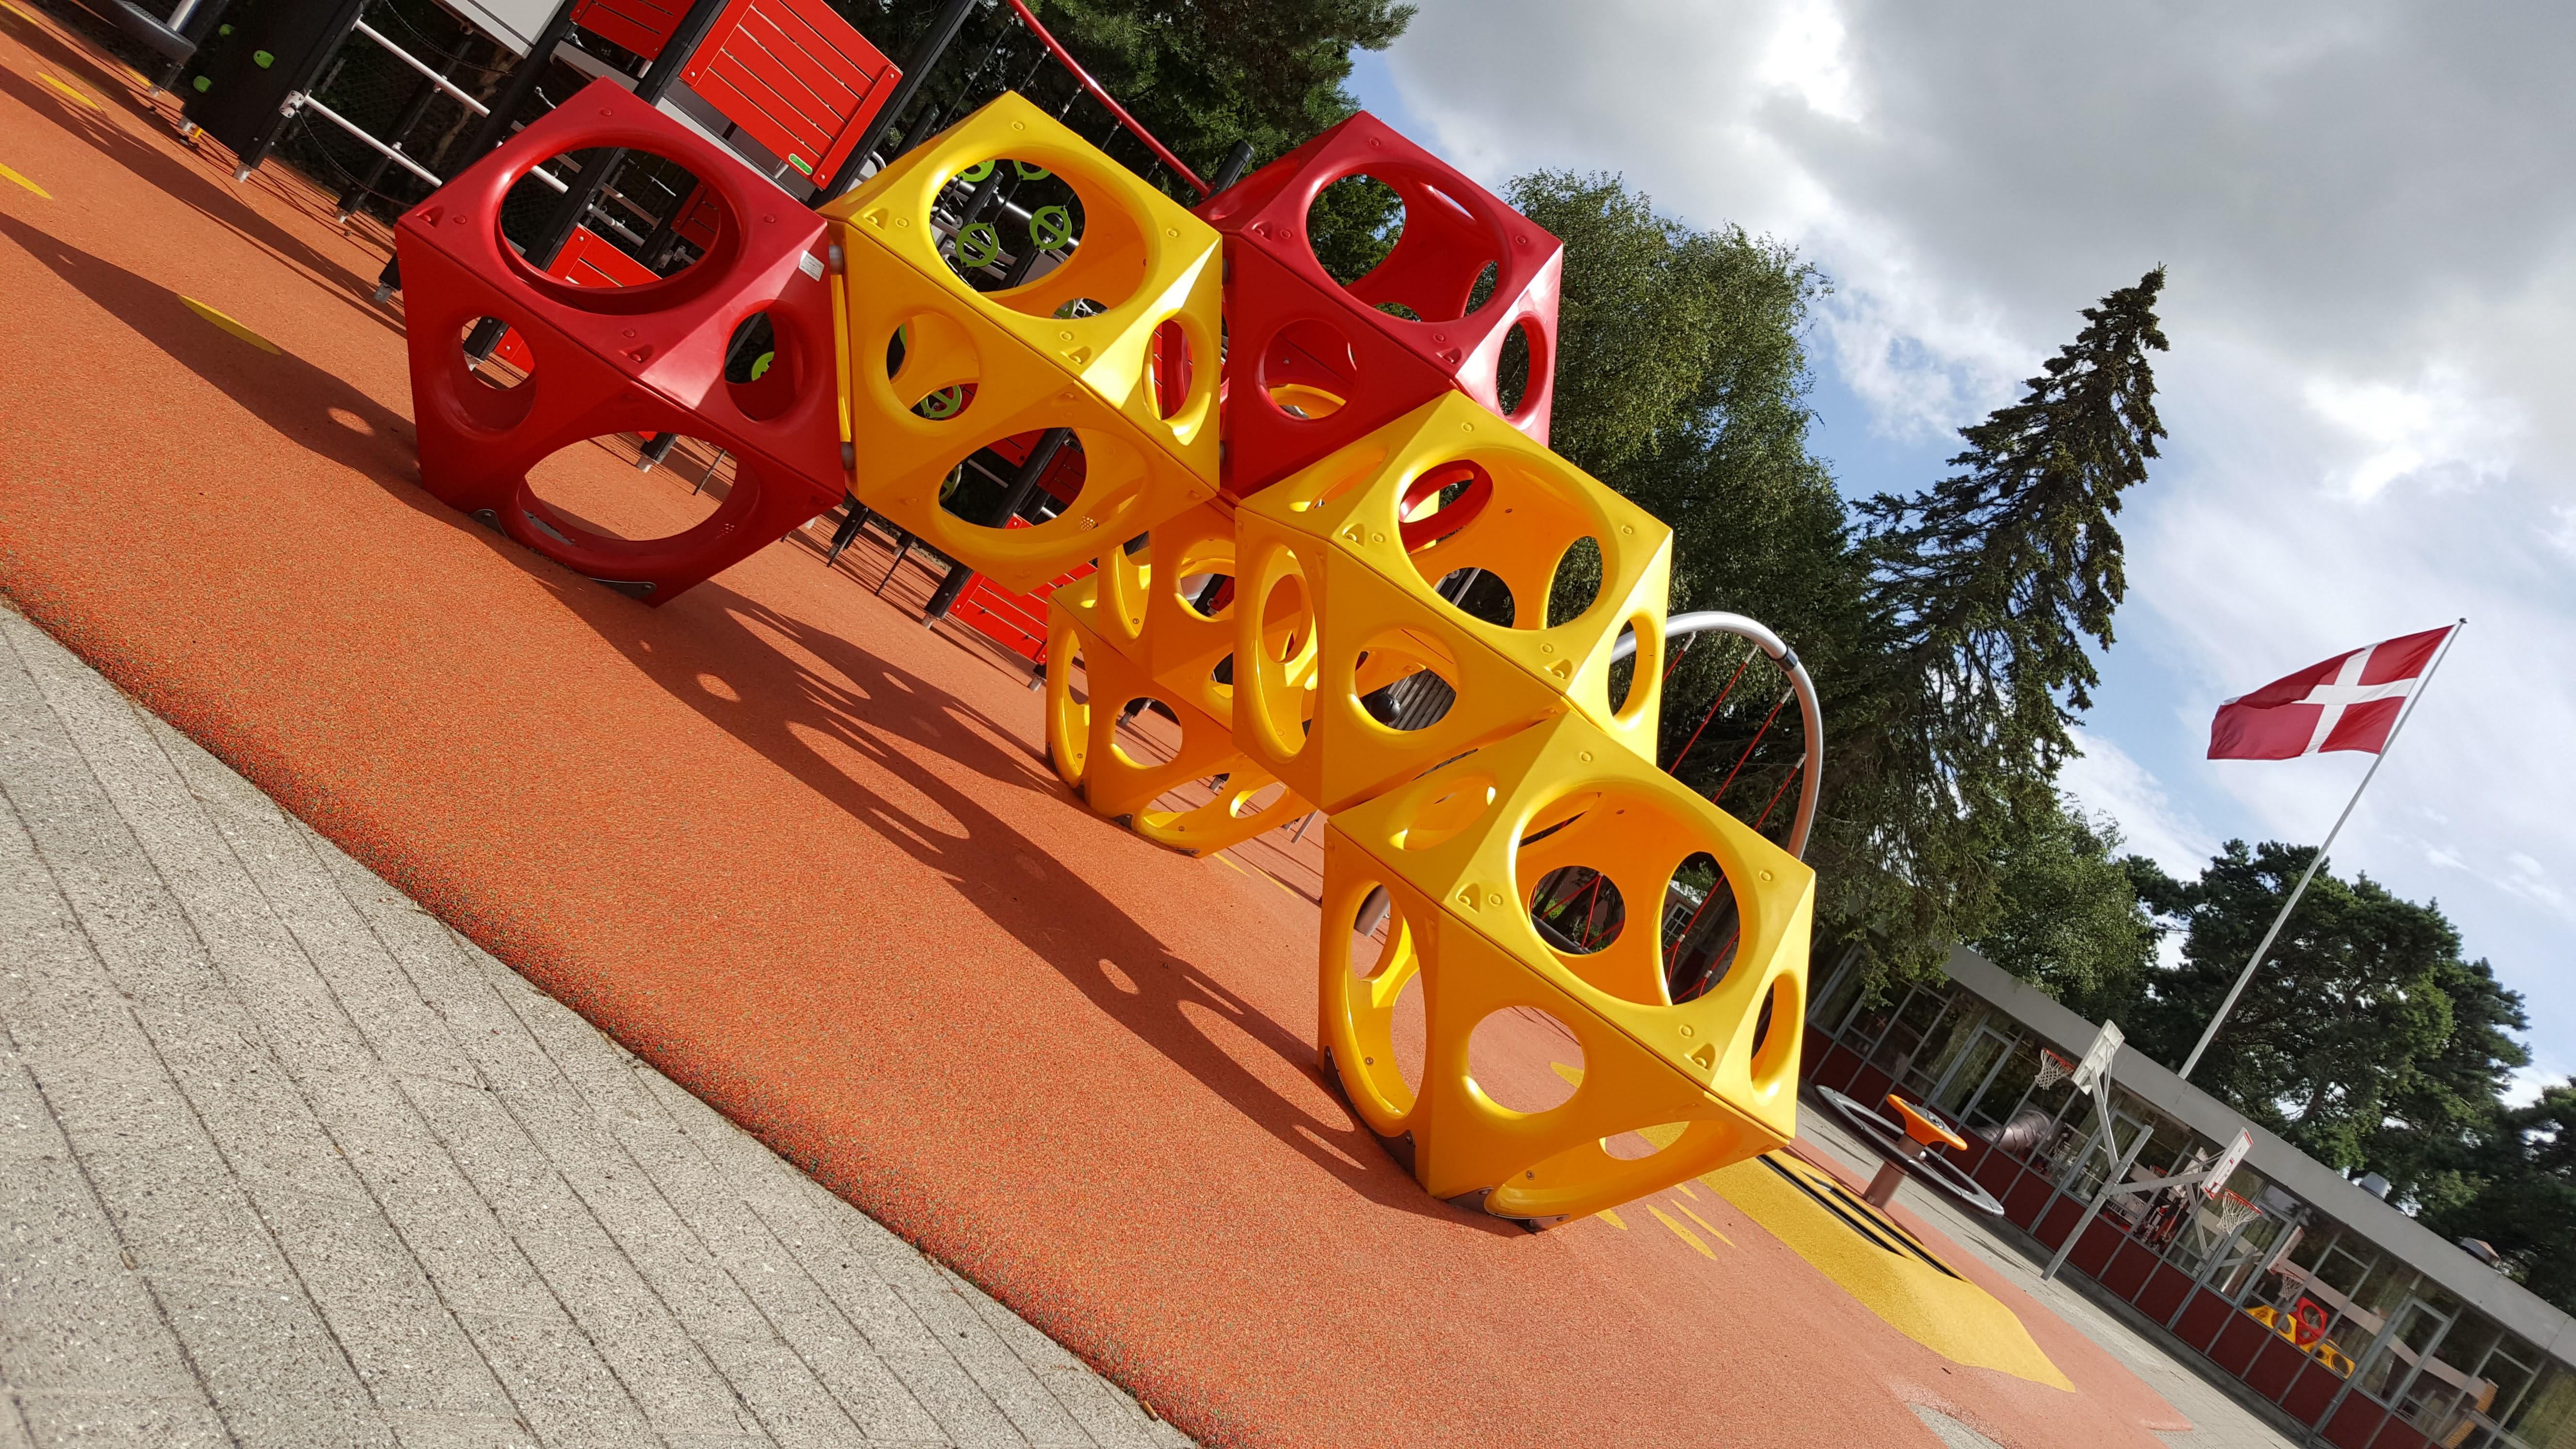 Red and Yellow Plastic Play Cubes in Denmark